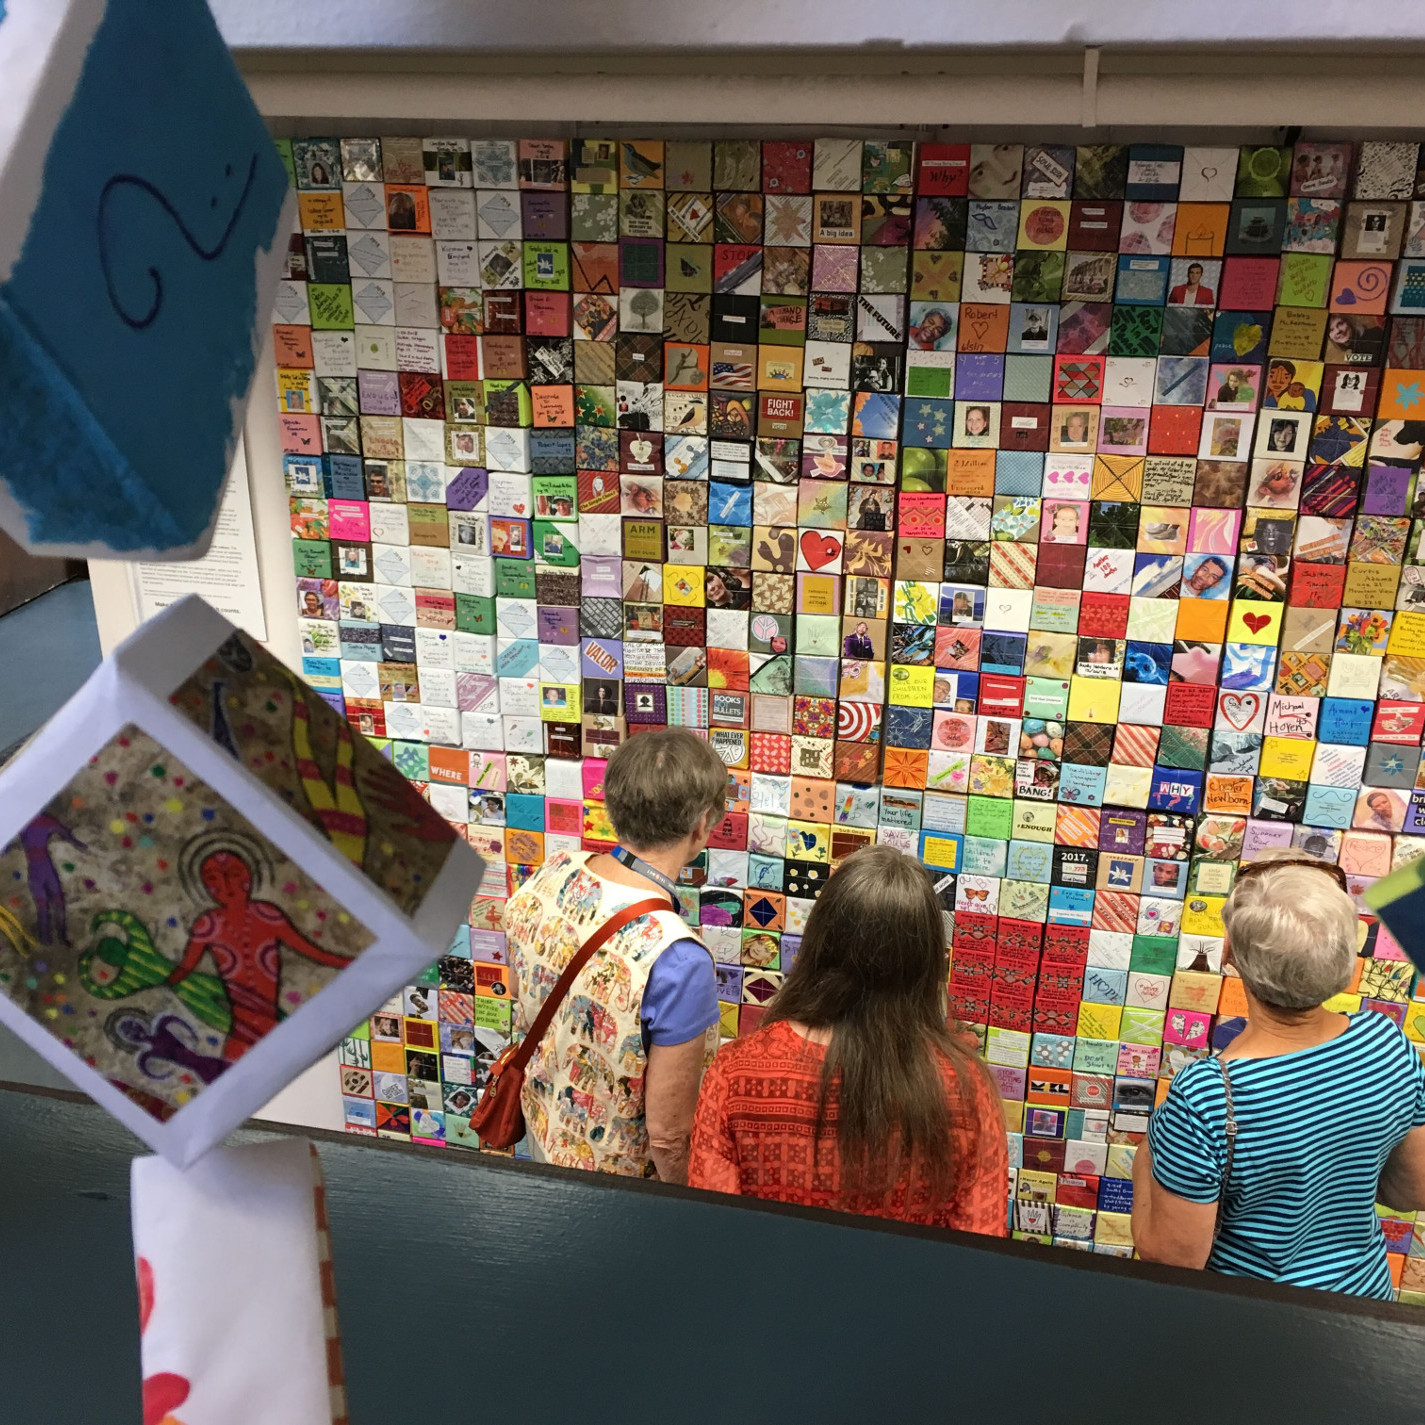 Soul Box Panels and strand, City Hall exhibit, Milwaukie, OR